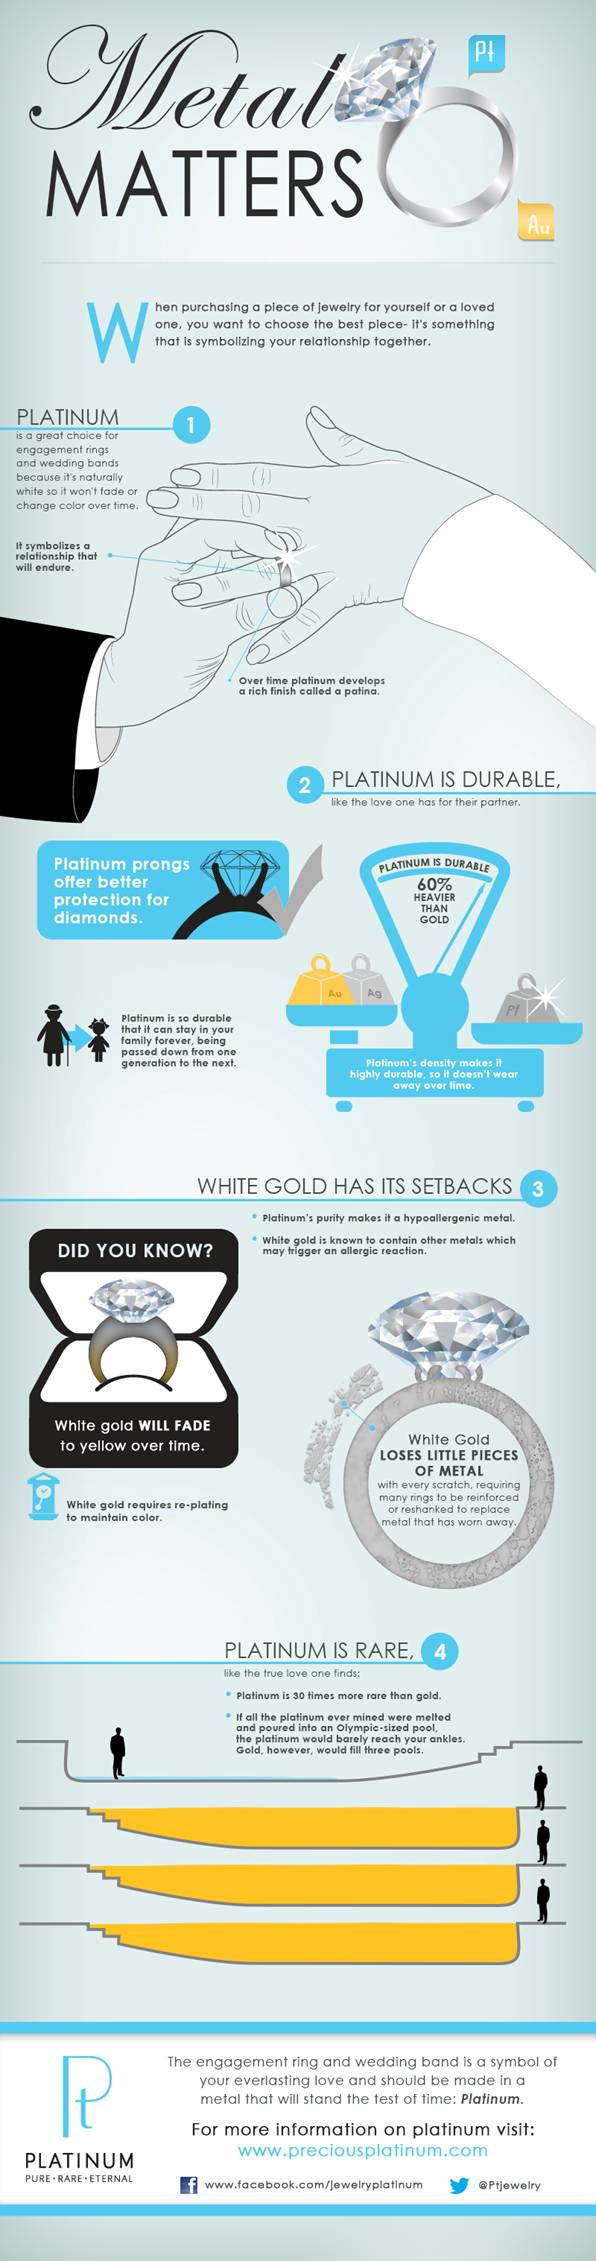 Learn about precious metals and why choosing the right metal matters. Your Anchorage jewelry expert at Giamante can assist you in choosing the right metal for your jewelry.